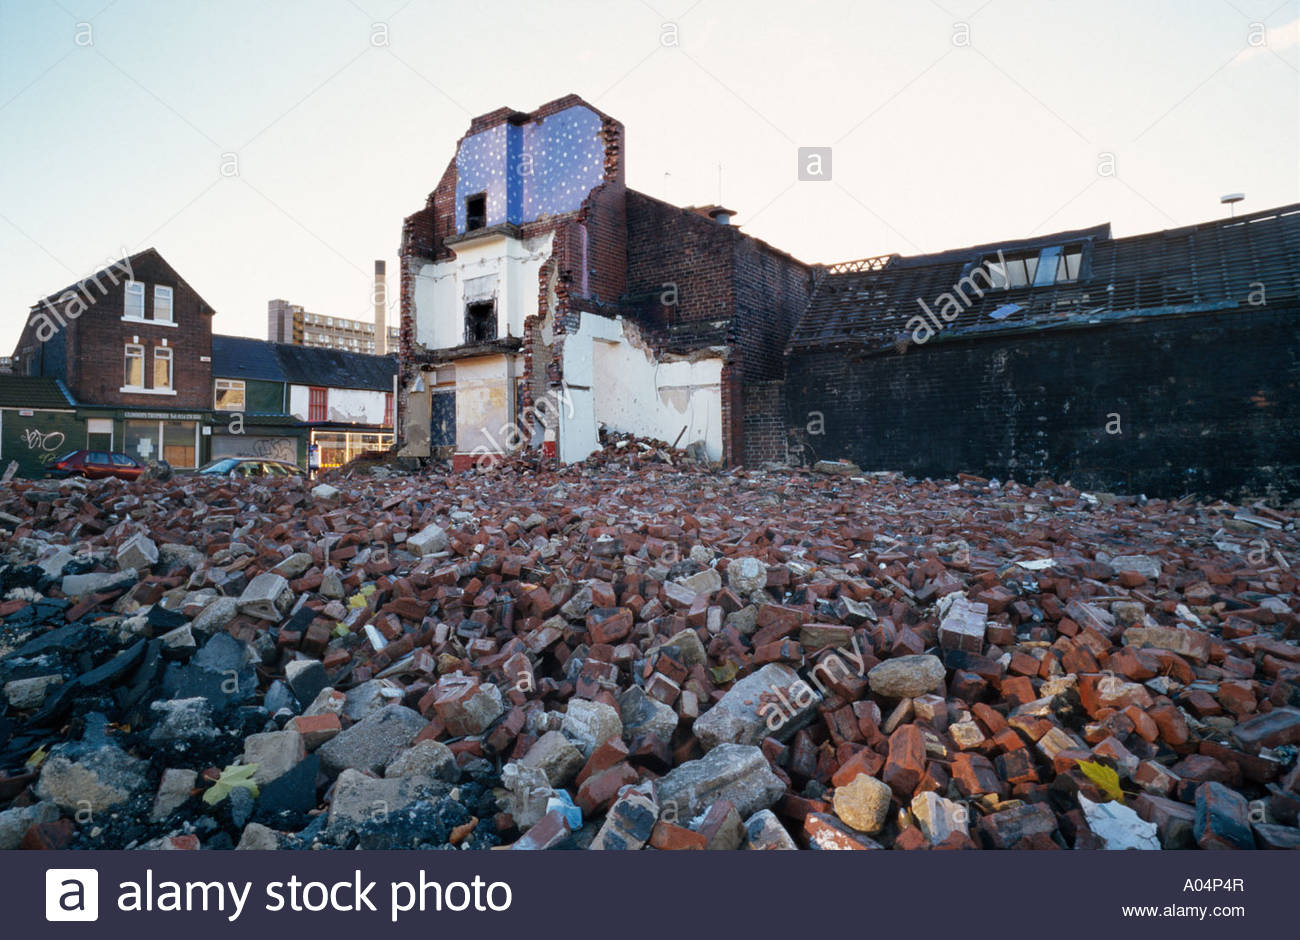 Partially demolished street in an area of low demand in Sheffield - Stock Image